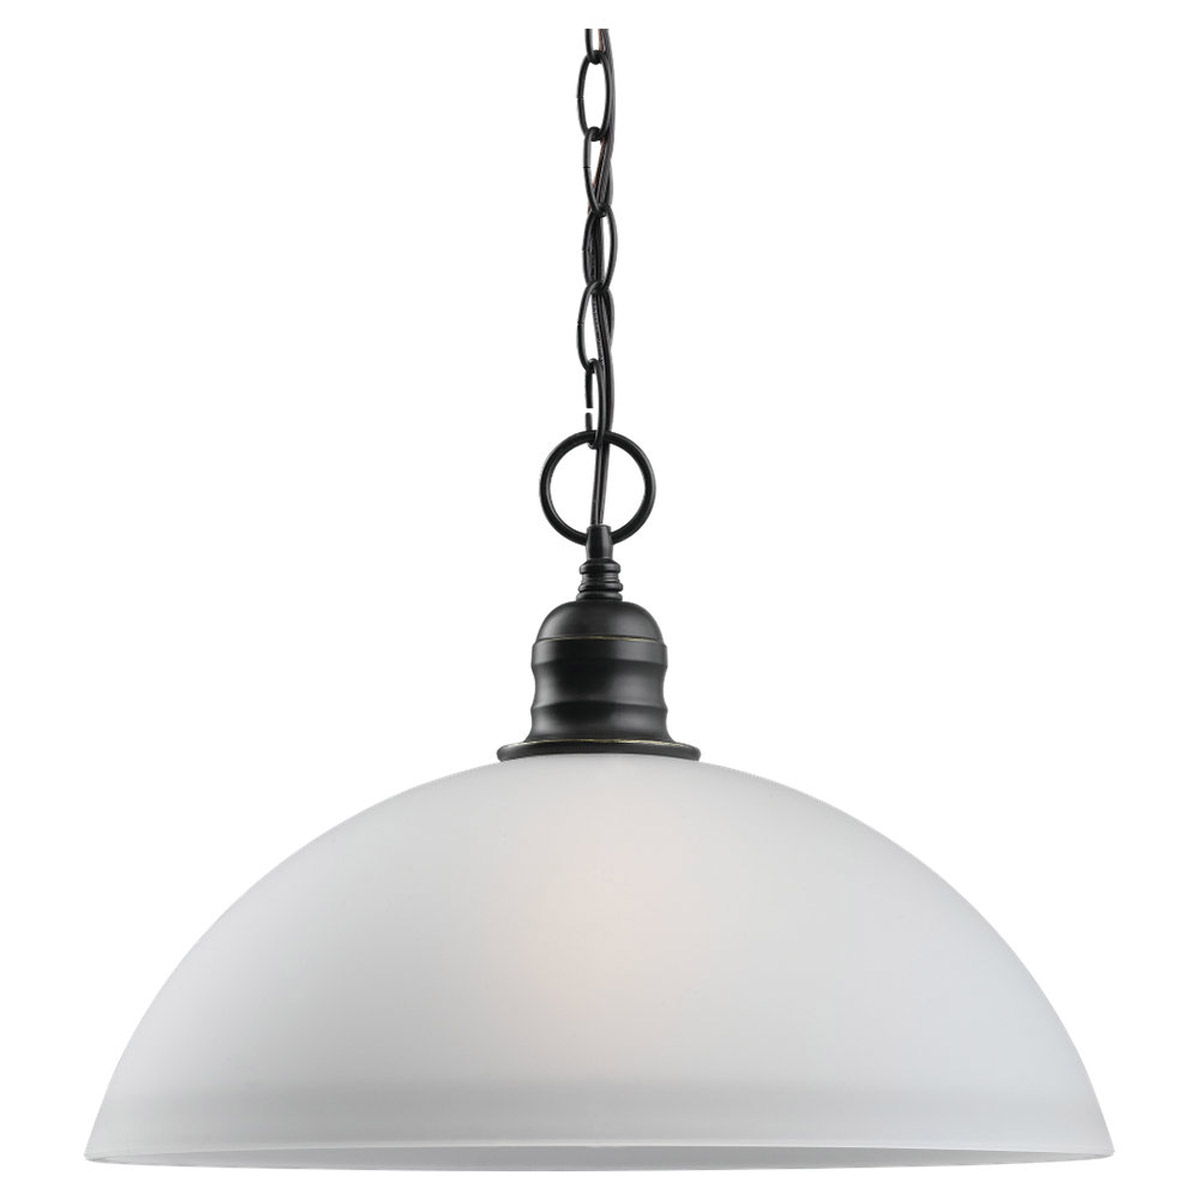 Sea Gull Lighting Linwood 1 Light Pendant in Heirloom Bronze 65225-782